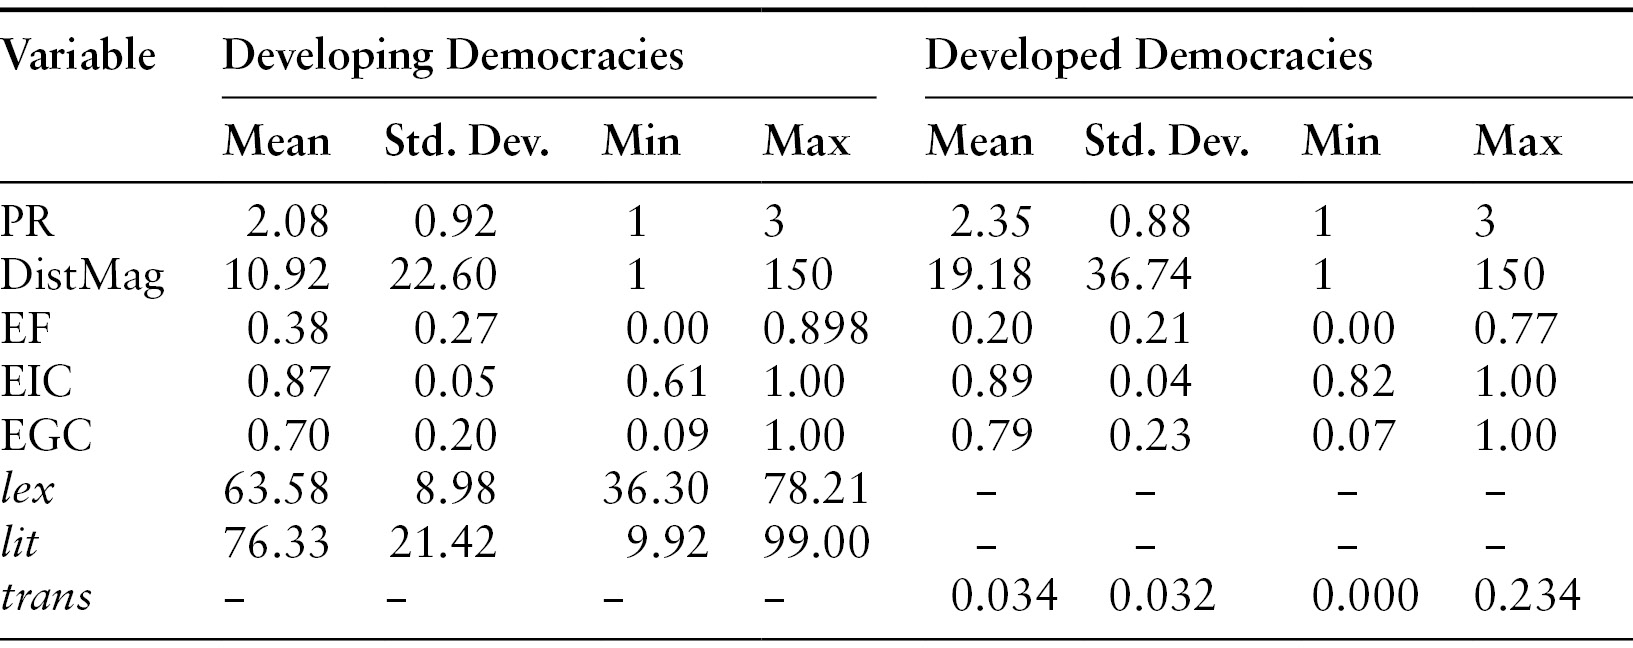 Electoral Rules, Ethnicity, and Health in Developing